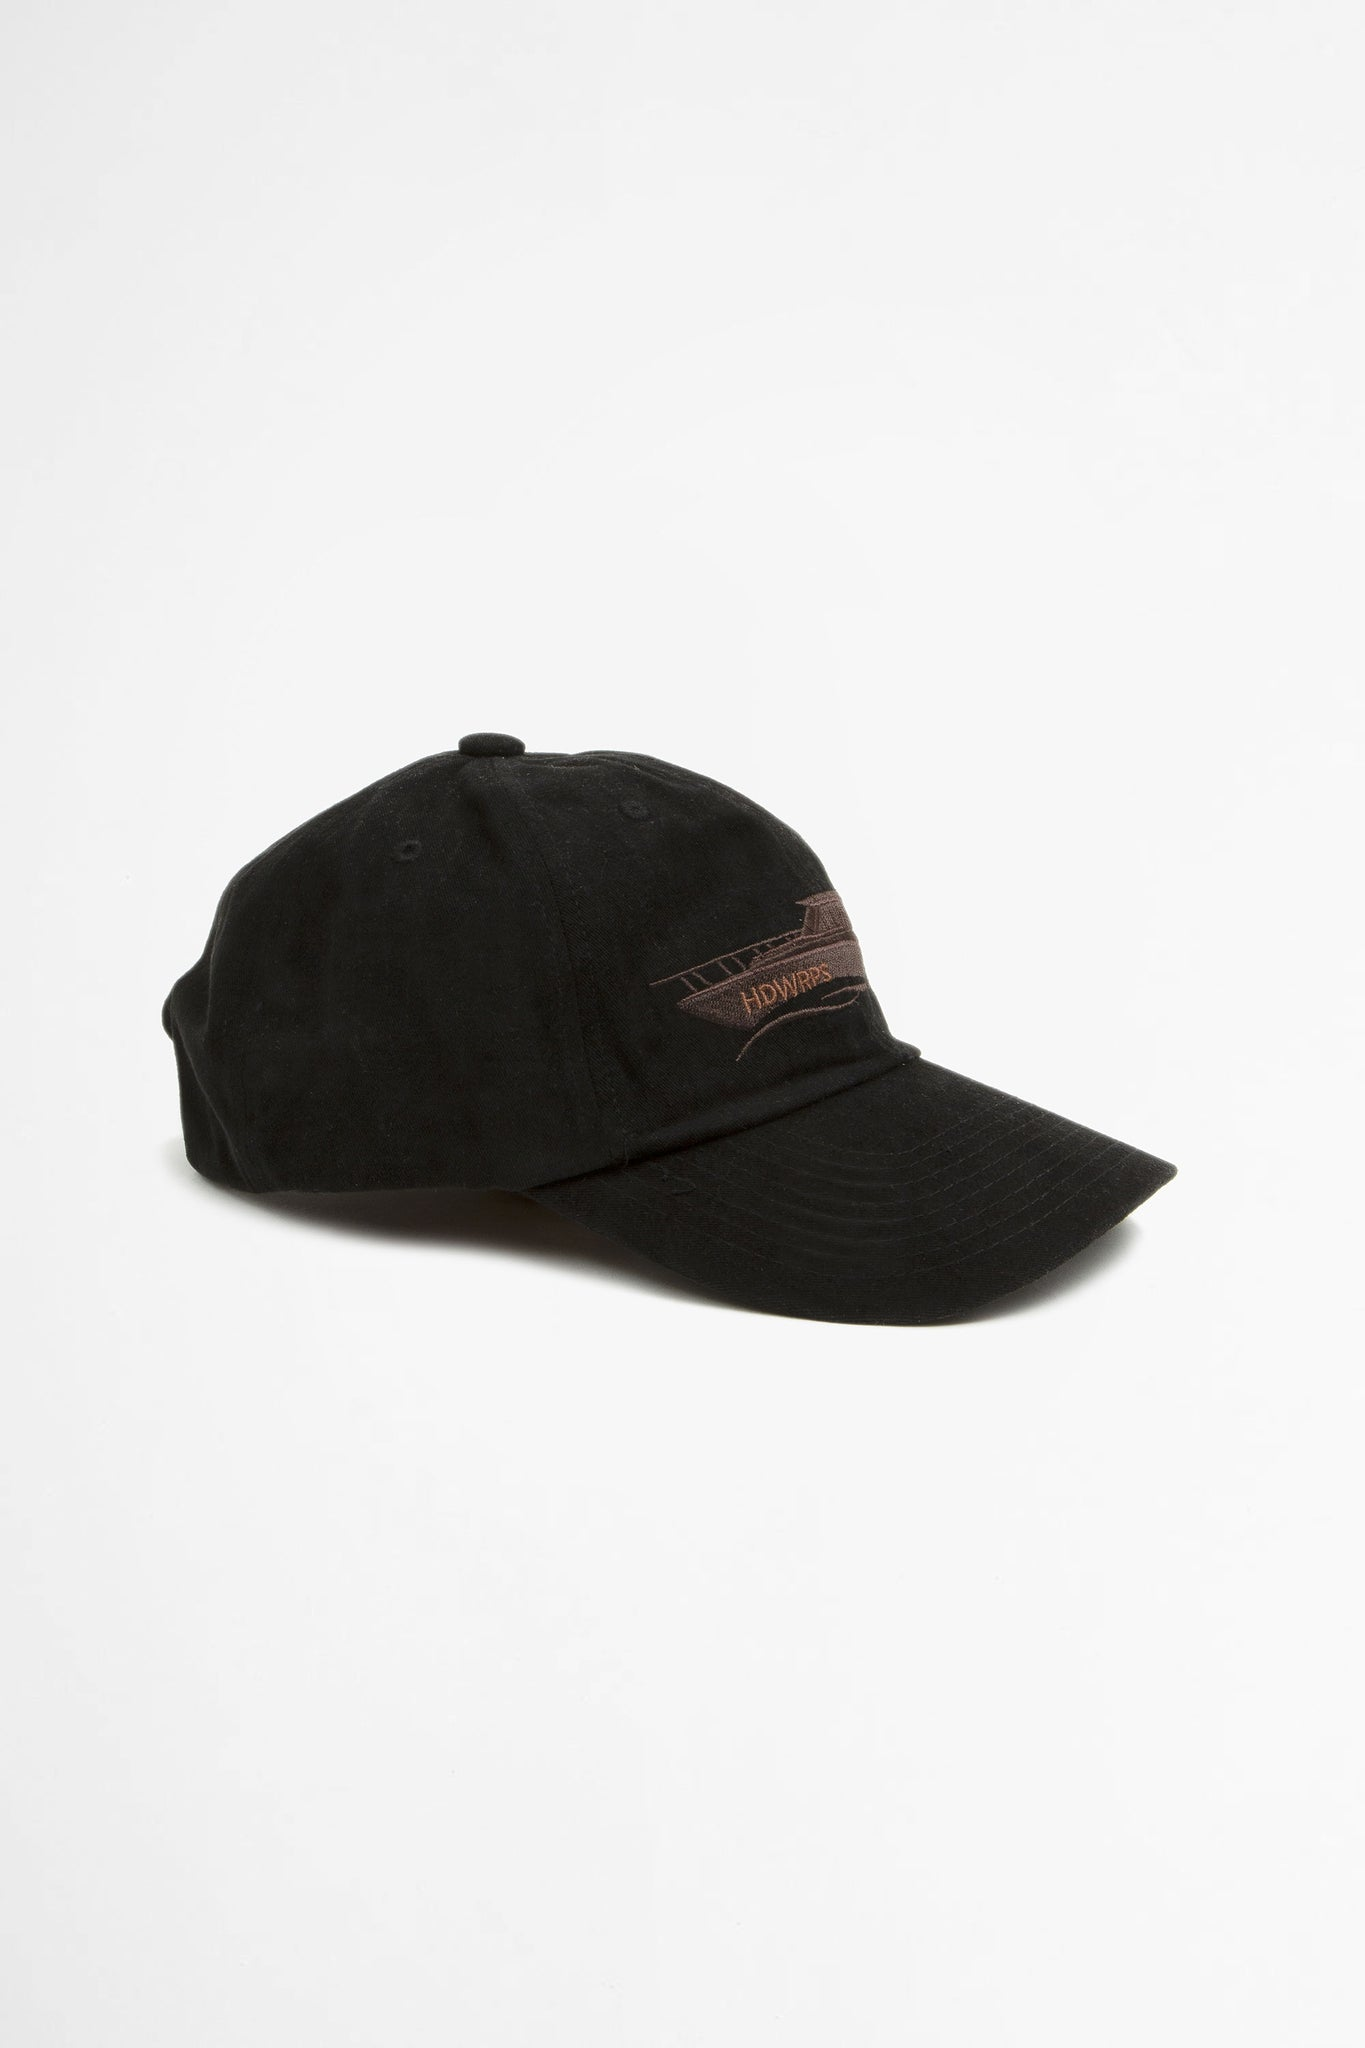 Boat six panel cap black